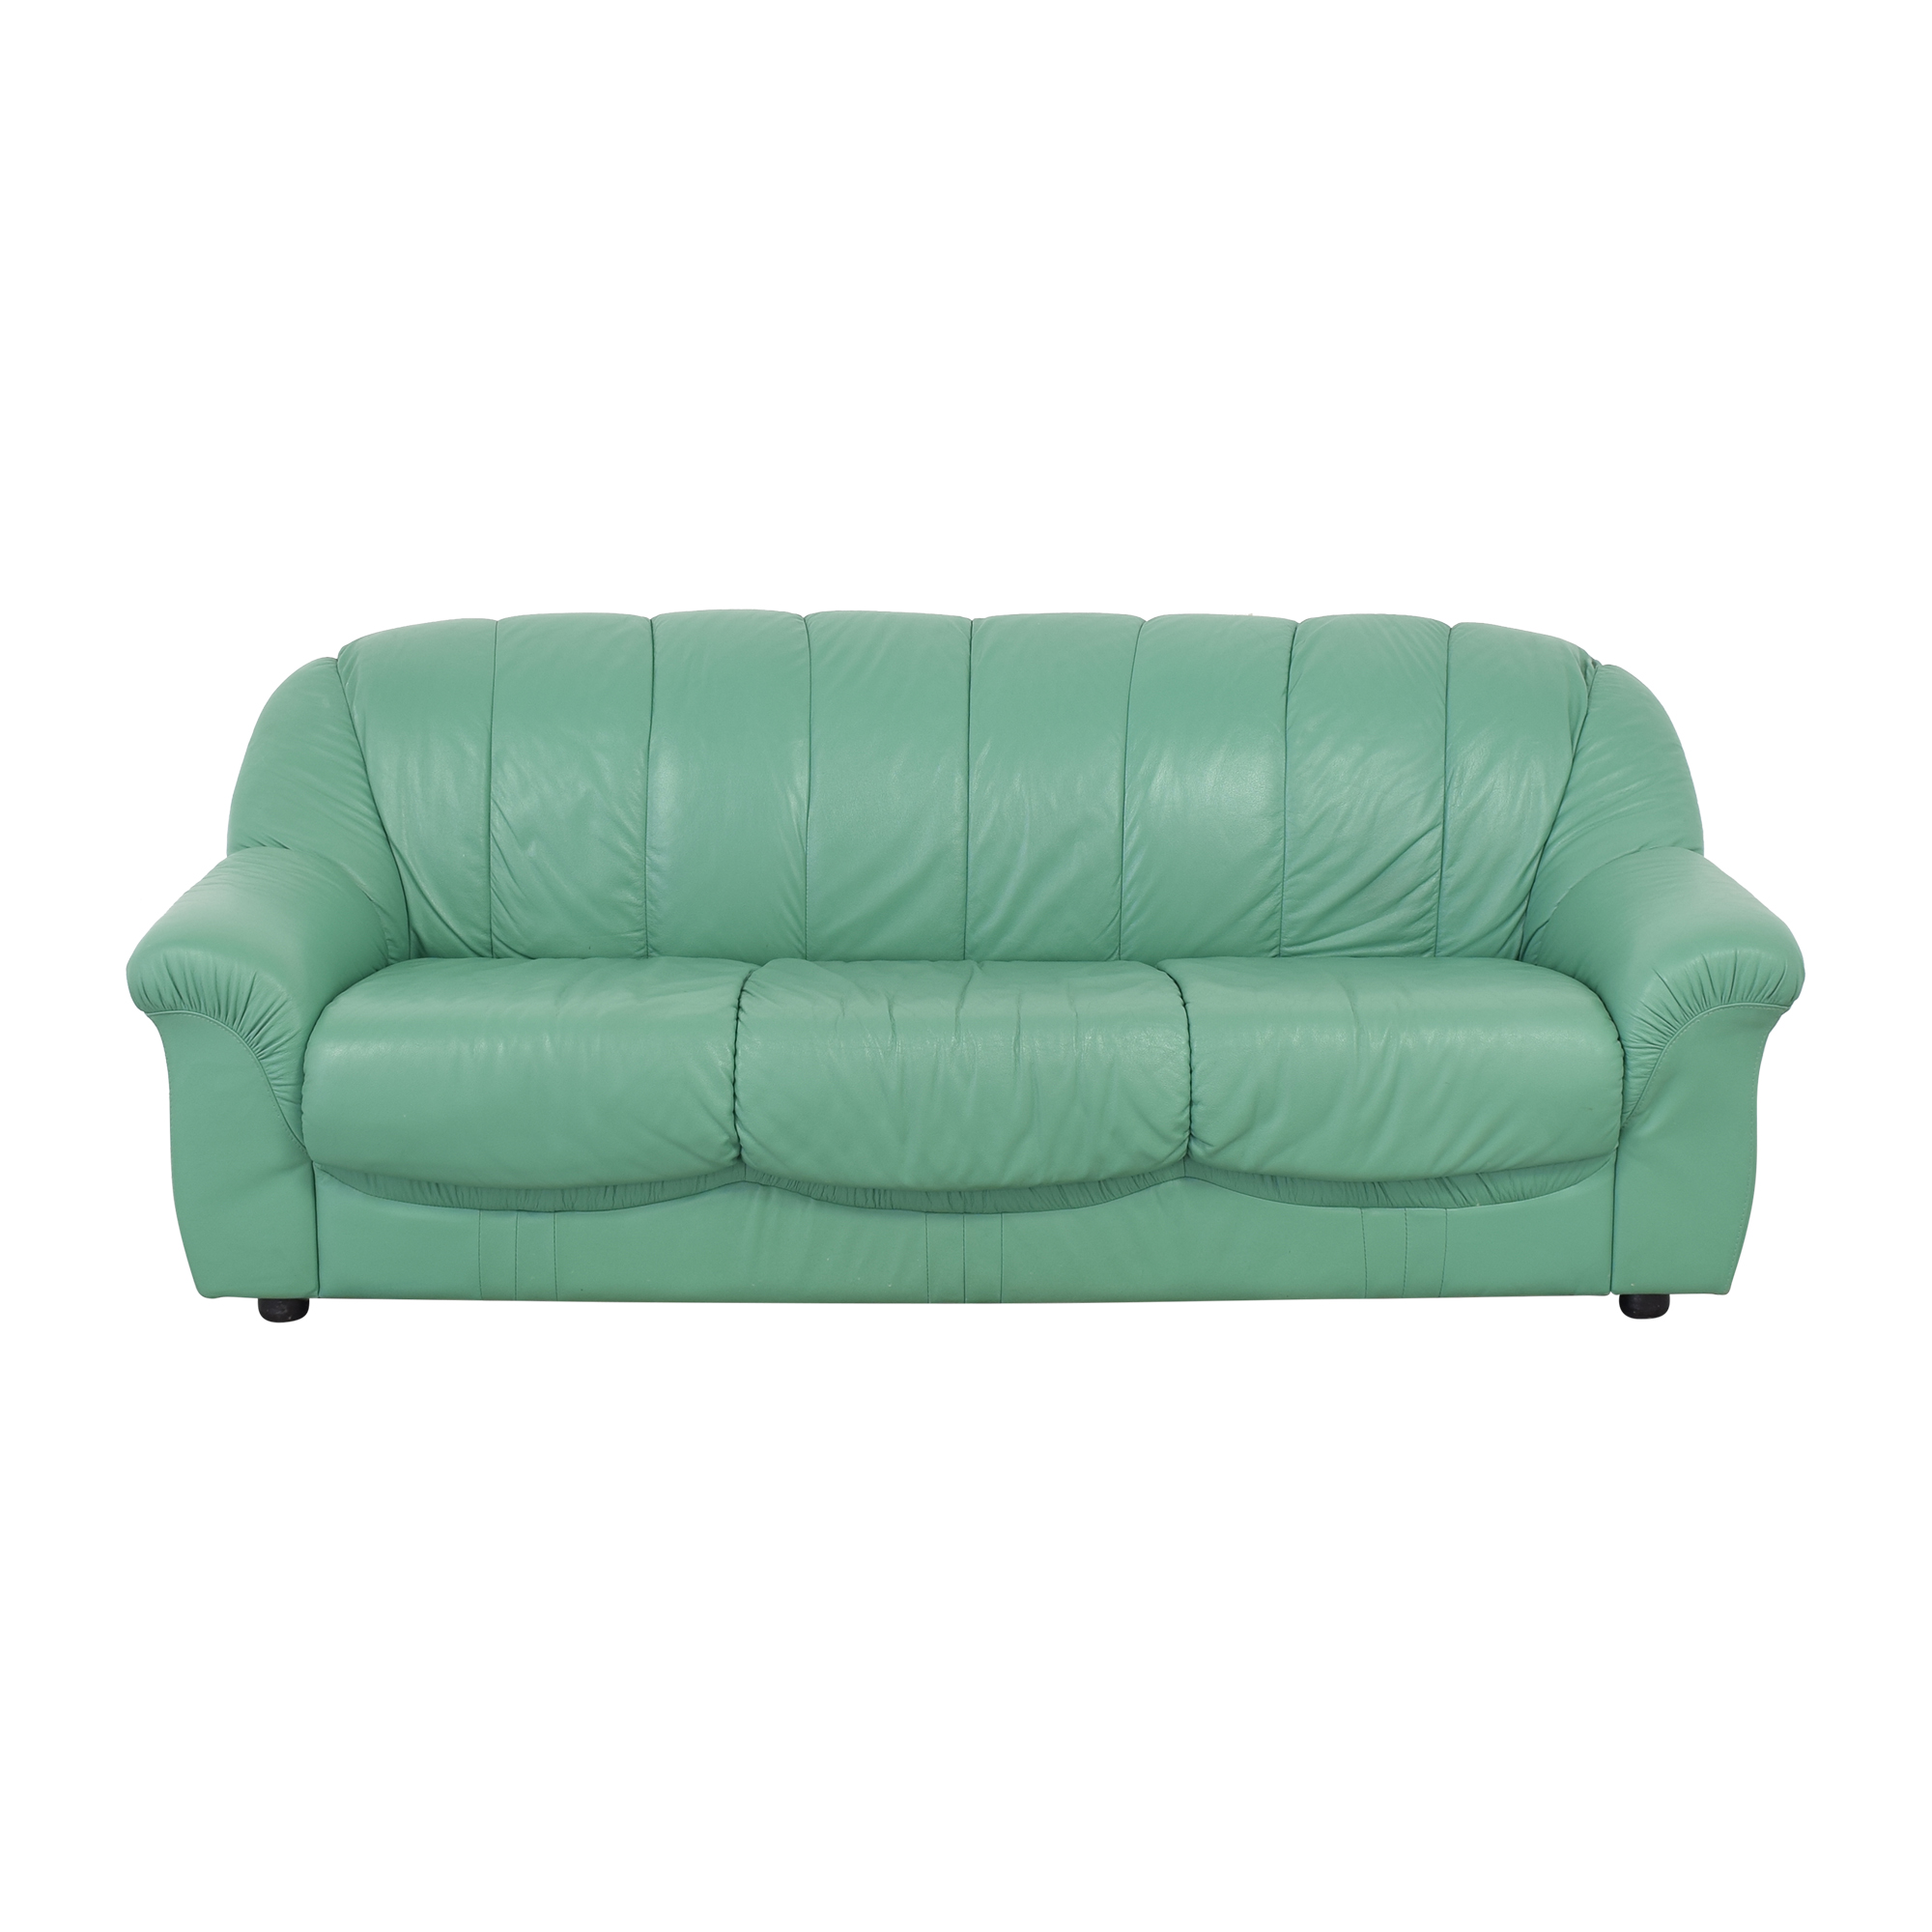 Roma Furniture Roma Three Cushion Sofa nyc